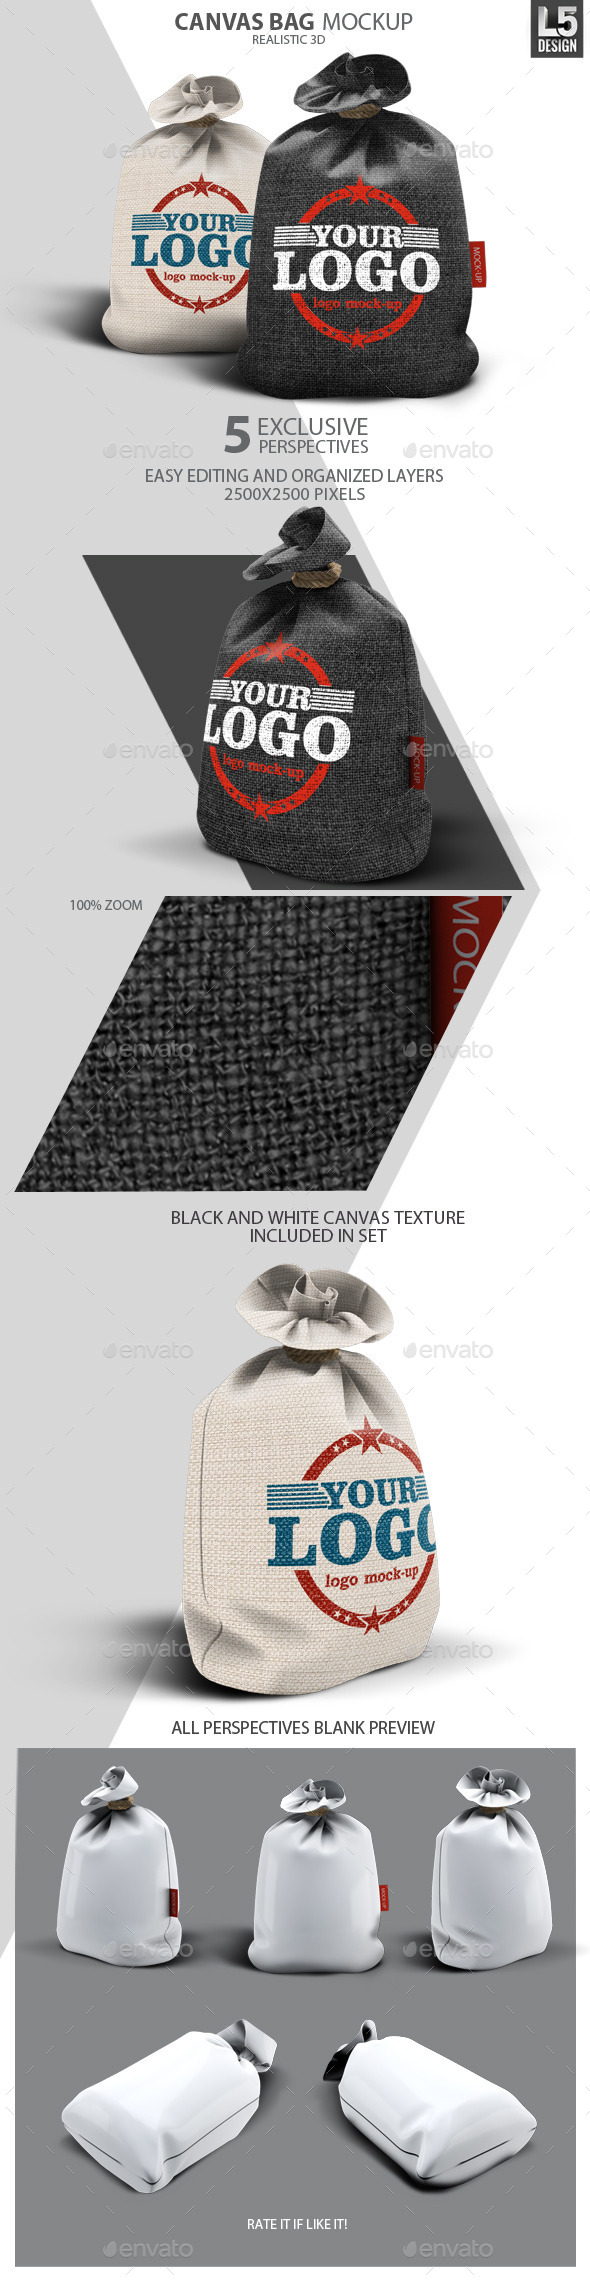 Canvas Bag Mock-Up - Miscellaneous Product Mock-Ups